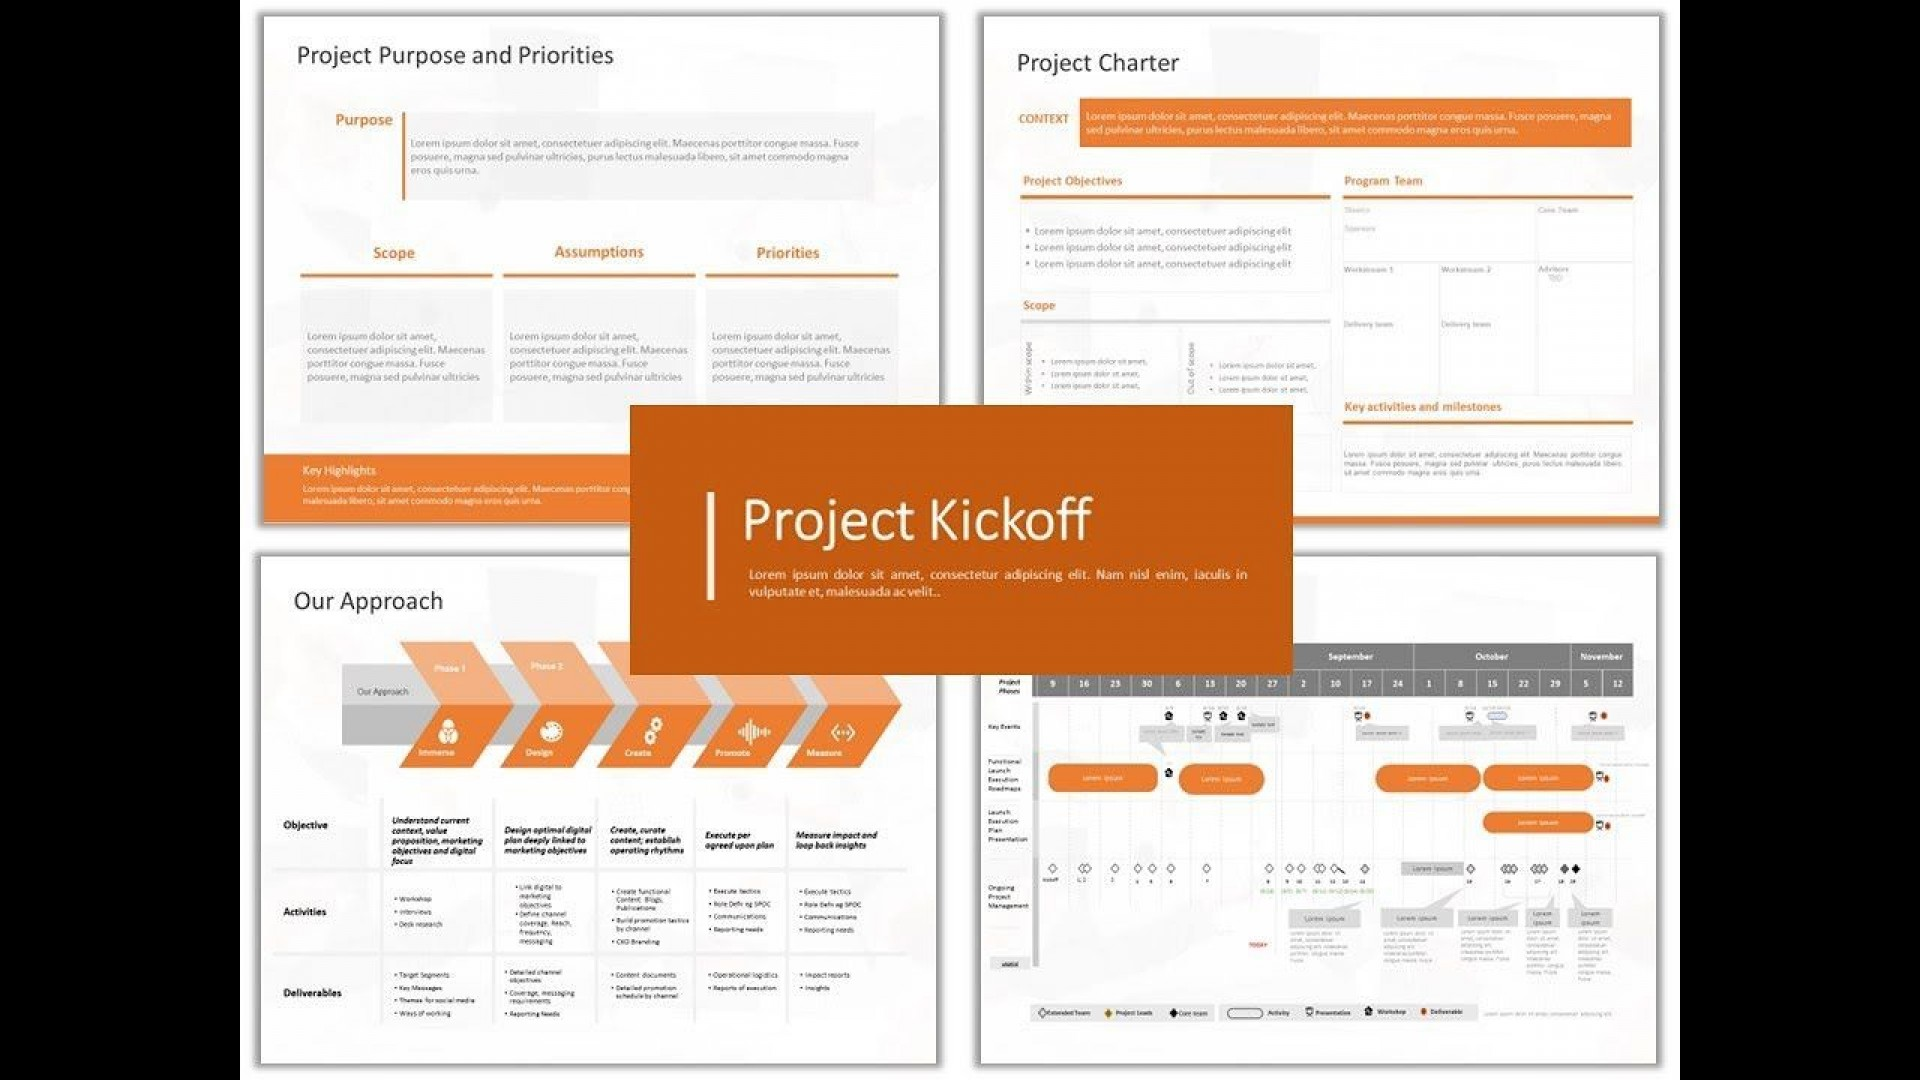 003 Archaicawful Project Kickoff Meeting Template Excel High Definition 1920